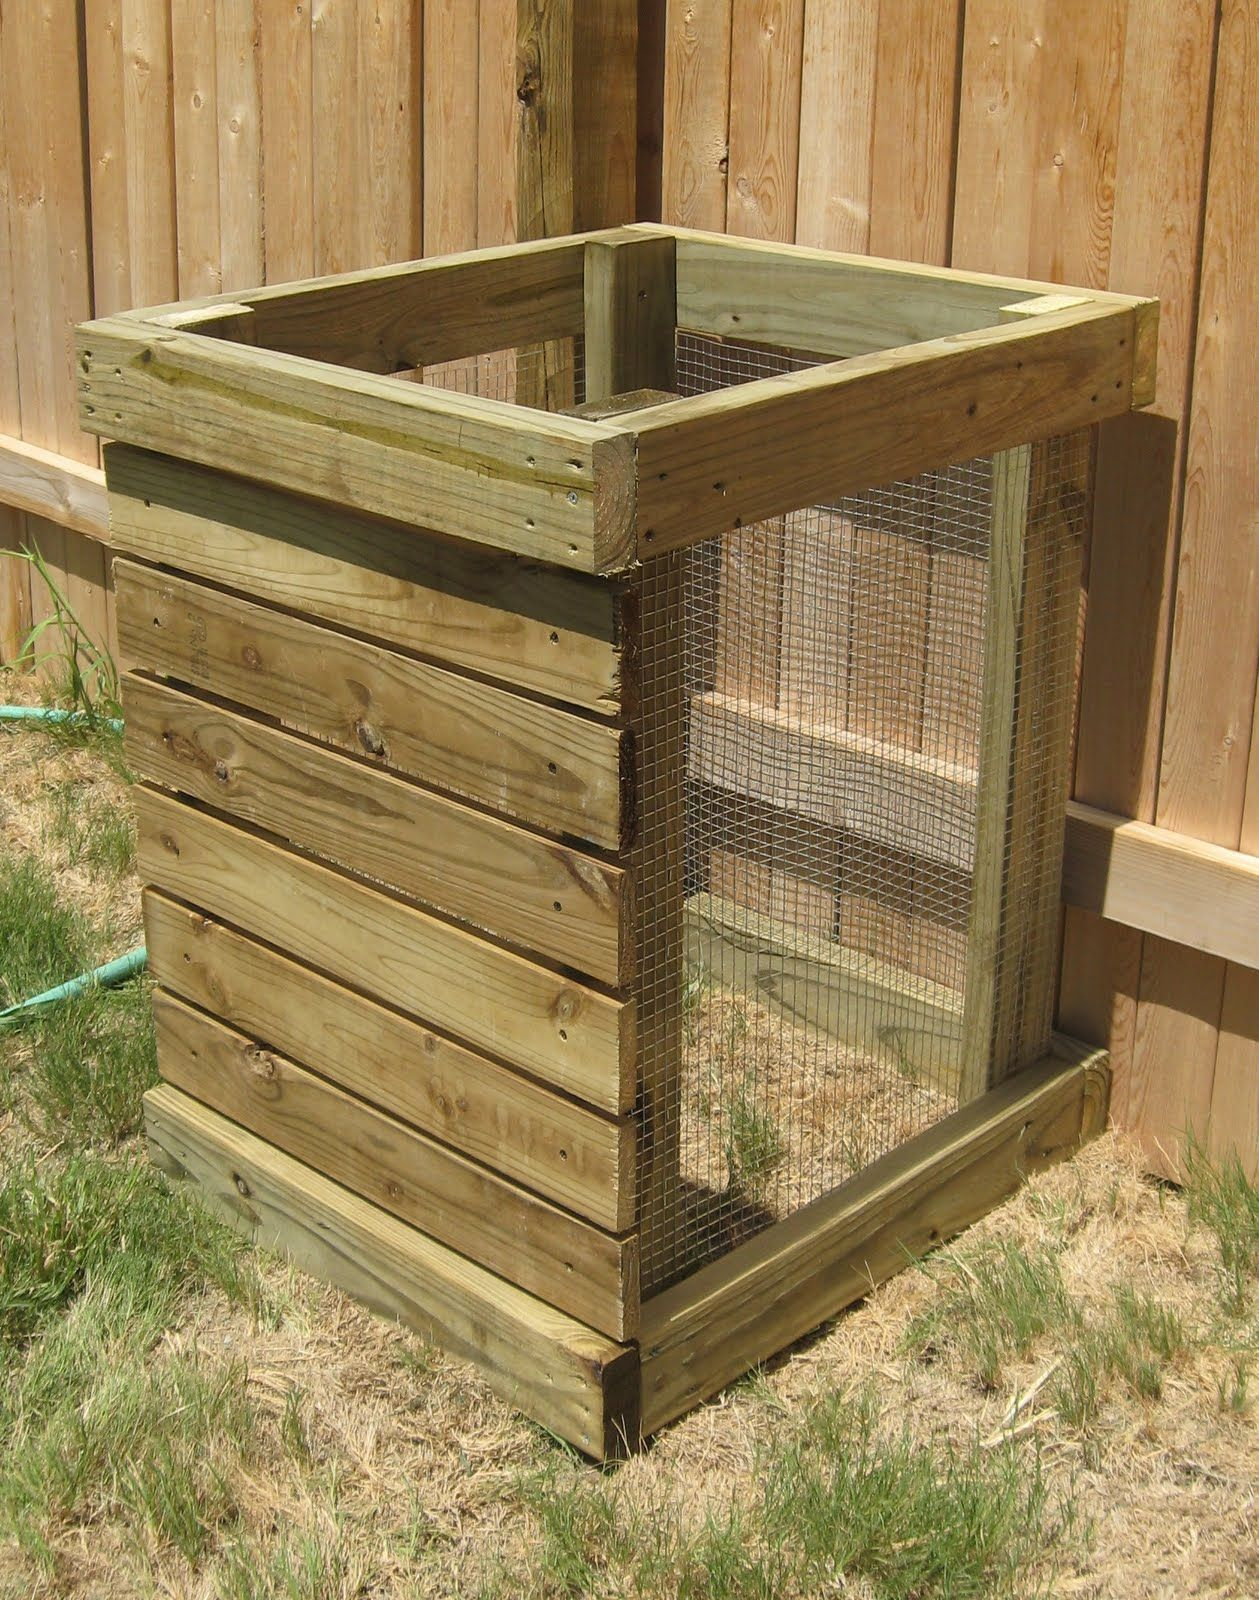 Charming Next To Heaven: DIY Compost Bin I Really Like This Idea For A Compost Bin.  Aiming To Make This For My Future House :)